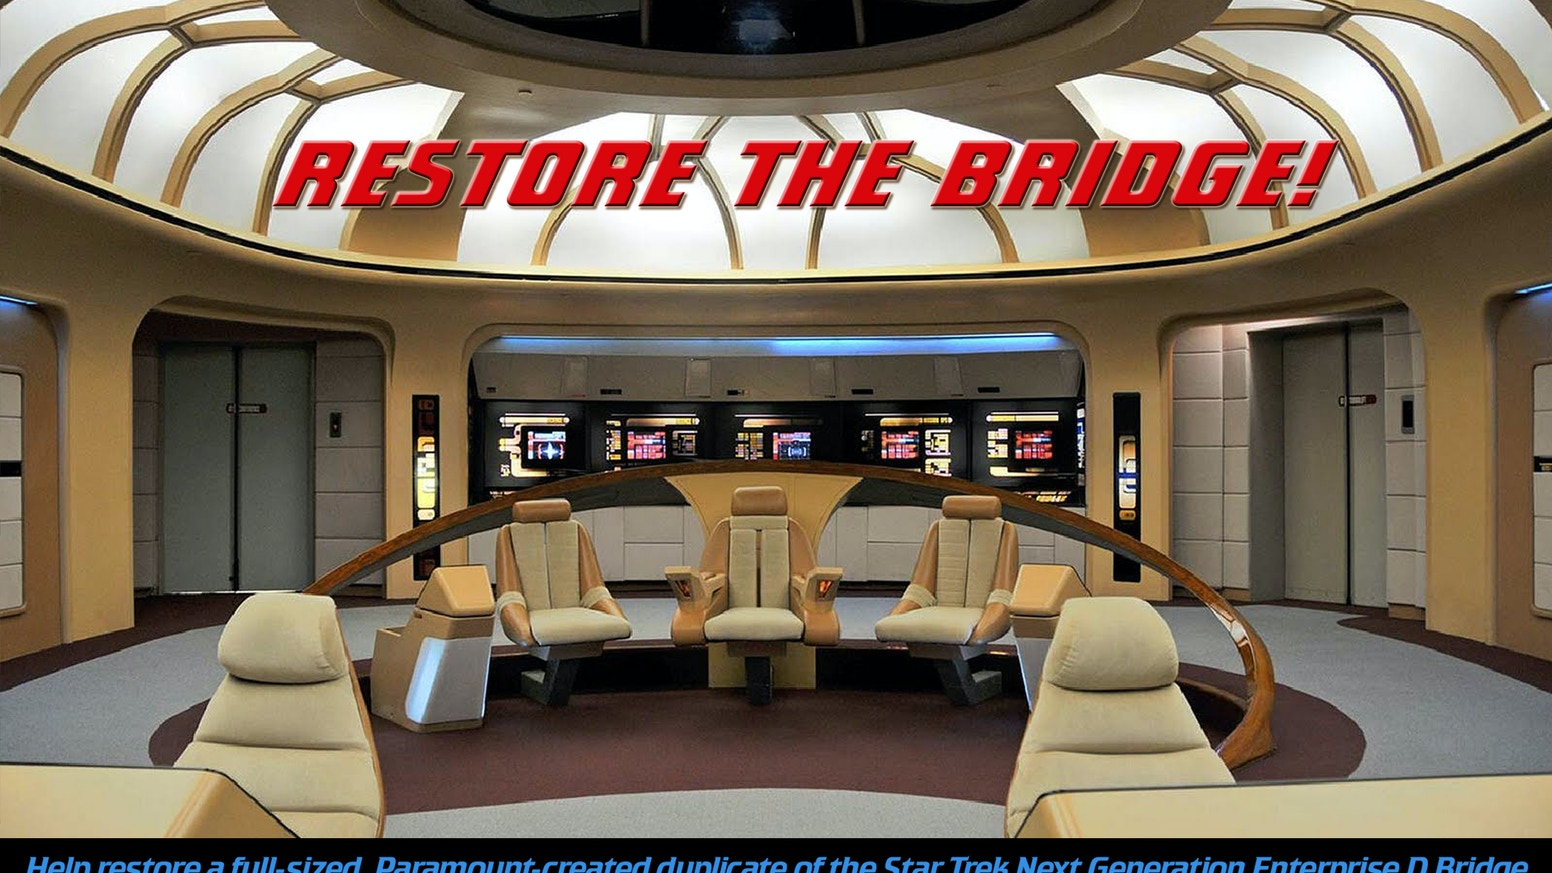 The restoration of a Paramount built STAR TREK Next Generation Enterprise D Bridge touring set for the Hollywood Science Fiction Museum.